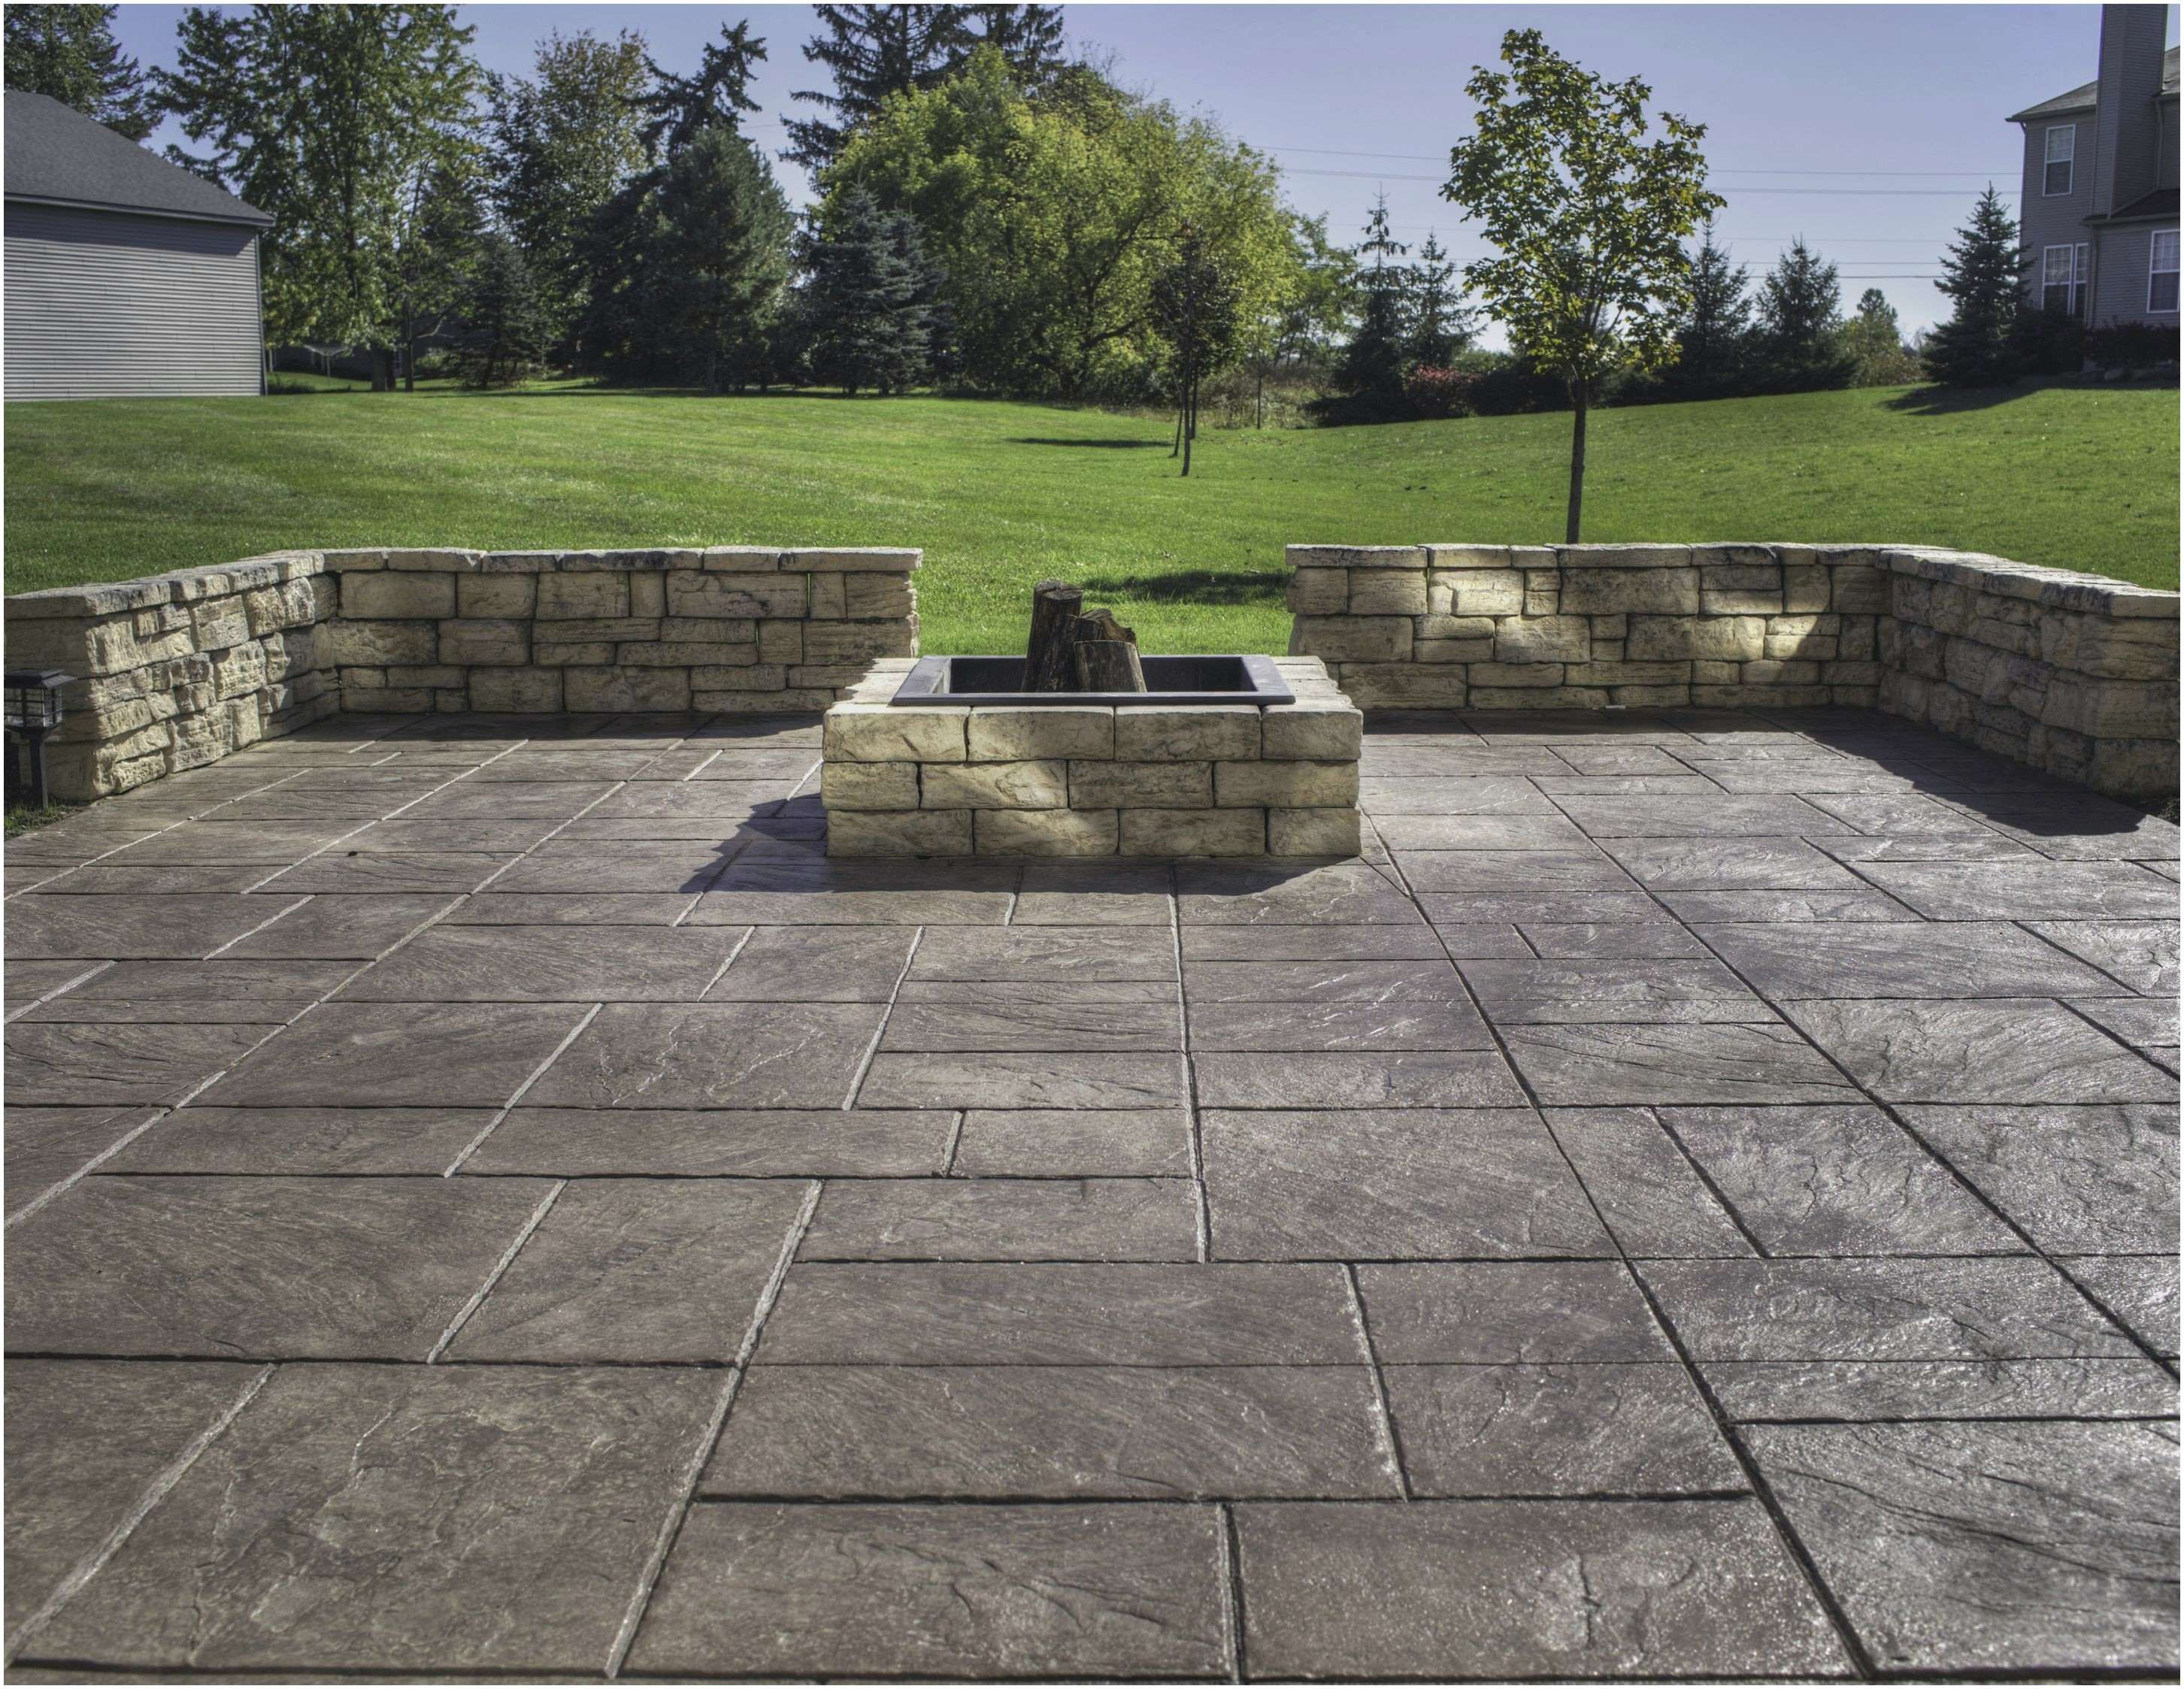 Have Cement Patios Which Are Long Lasting Poured Concrete Patio Concrete Backyard Concrete Patio Designs